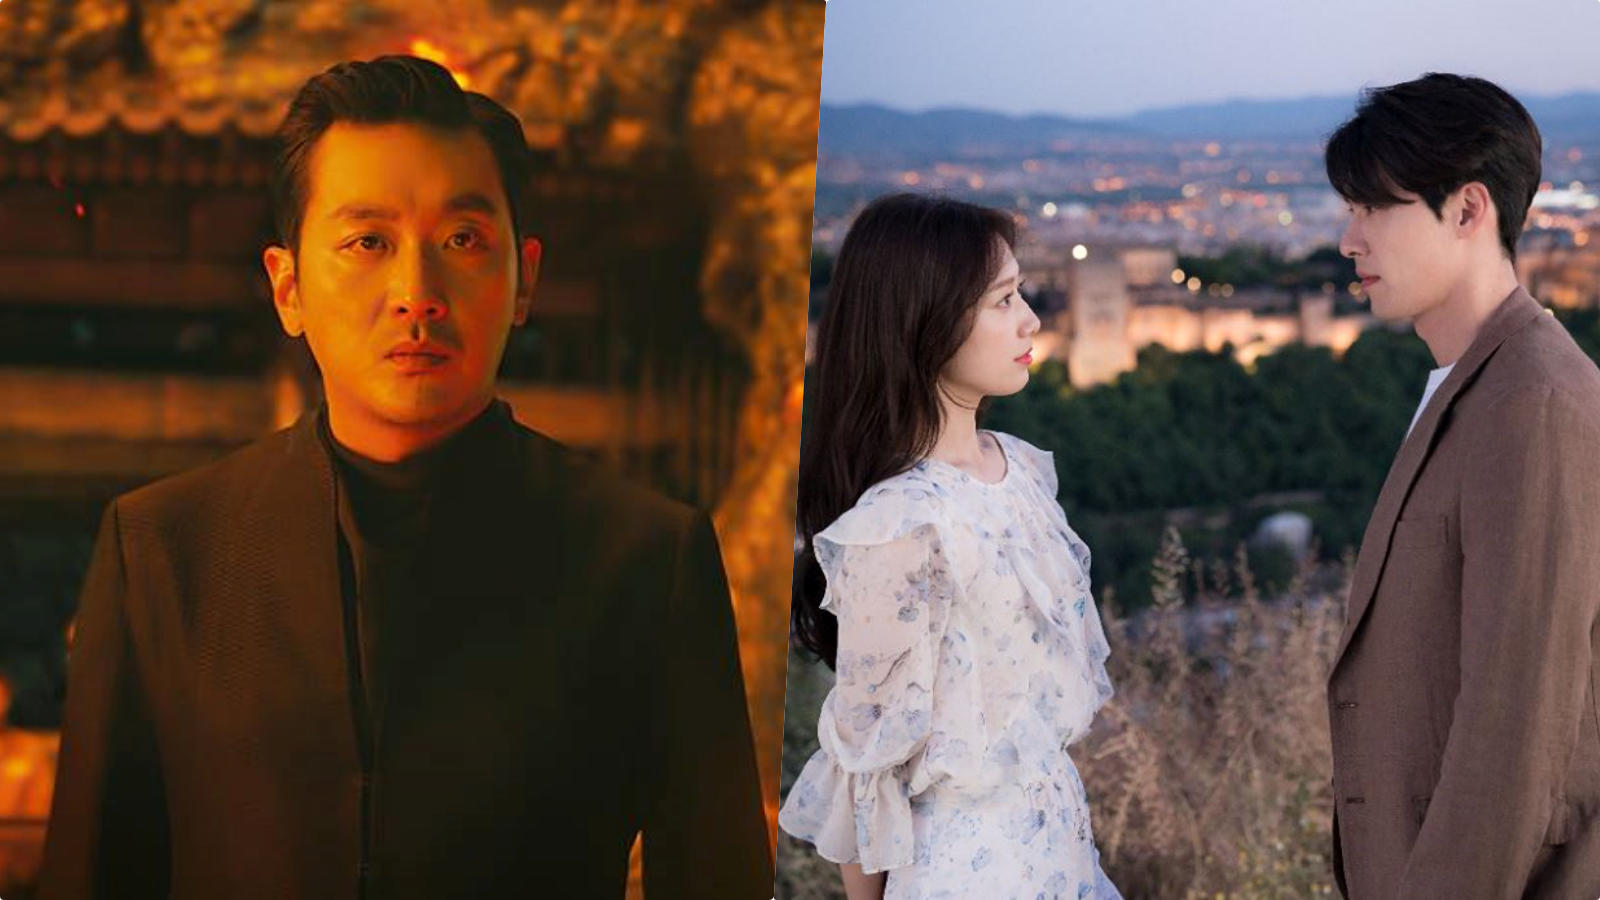 Ha Jung Woo Puji Drama Korea Memories of the Alhambra